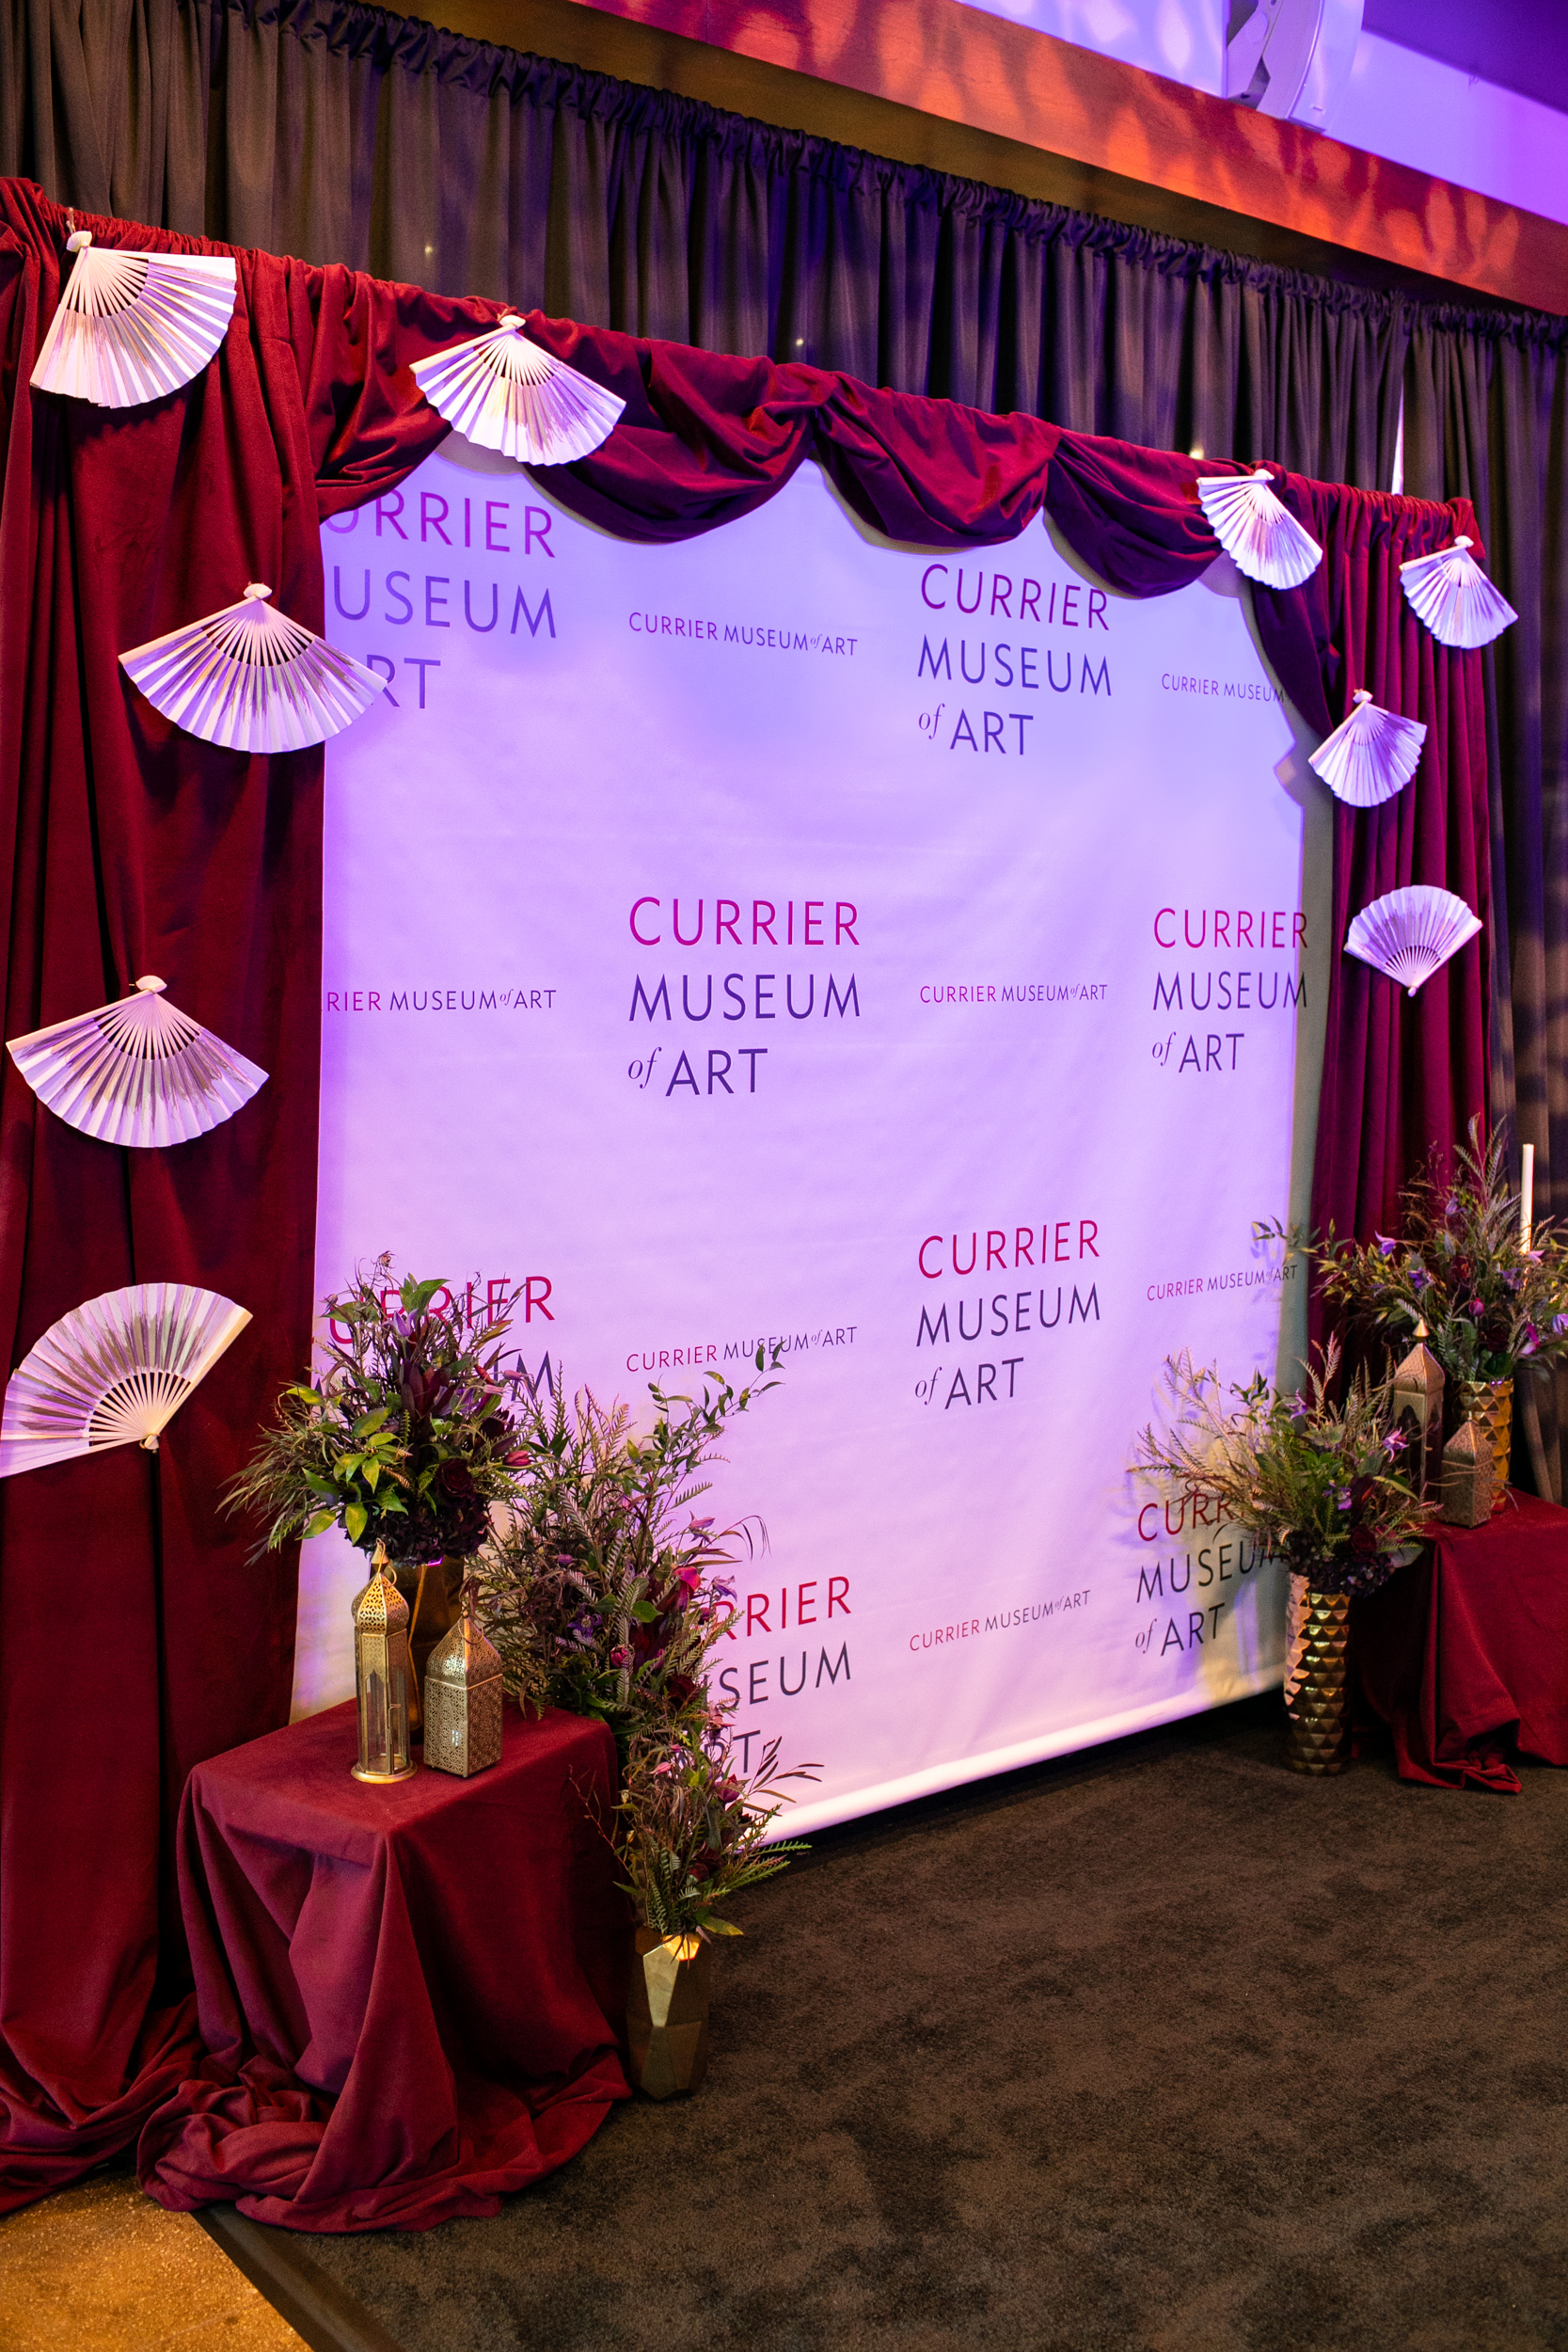 Masquerade_Ball_Currier_Museum_Manchester_Malloy_Events_branding_drape_floral_staging